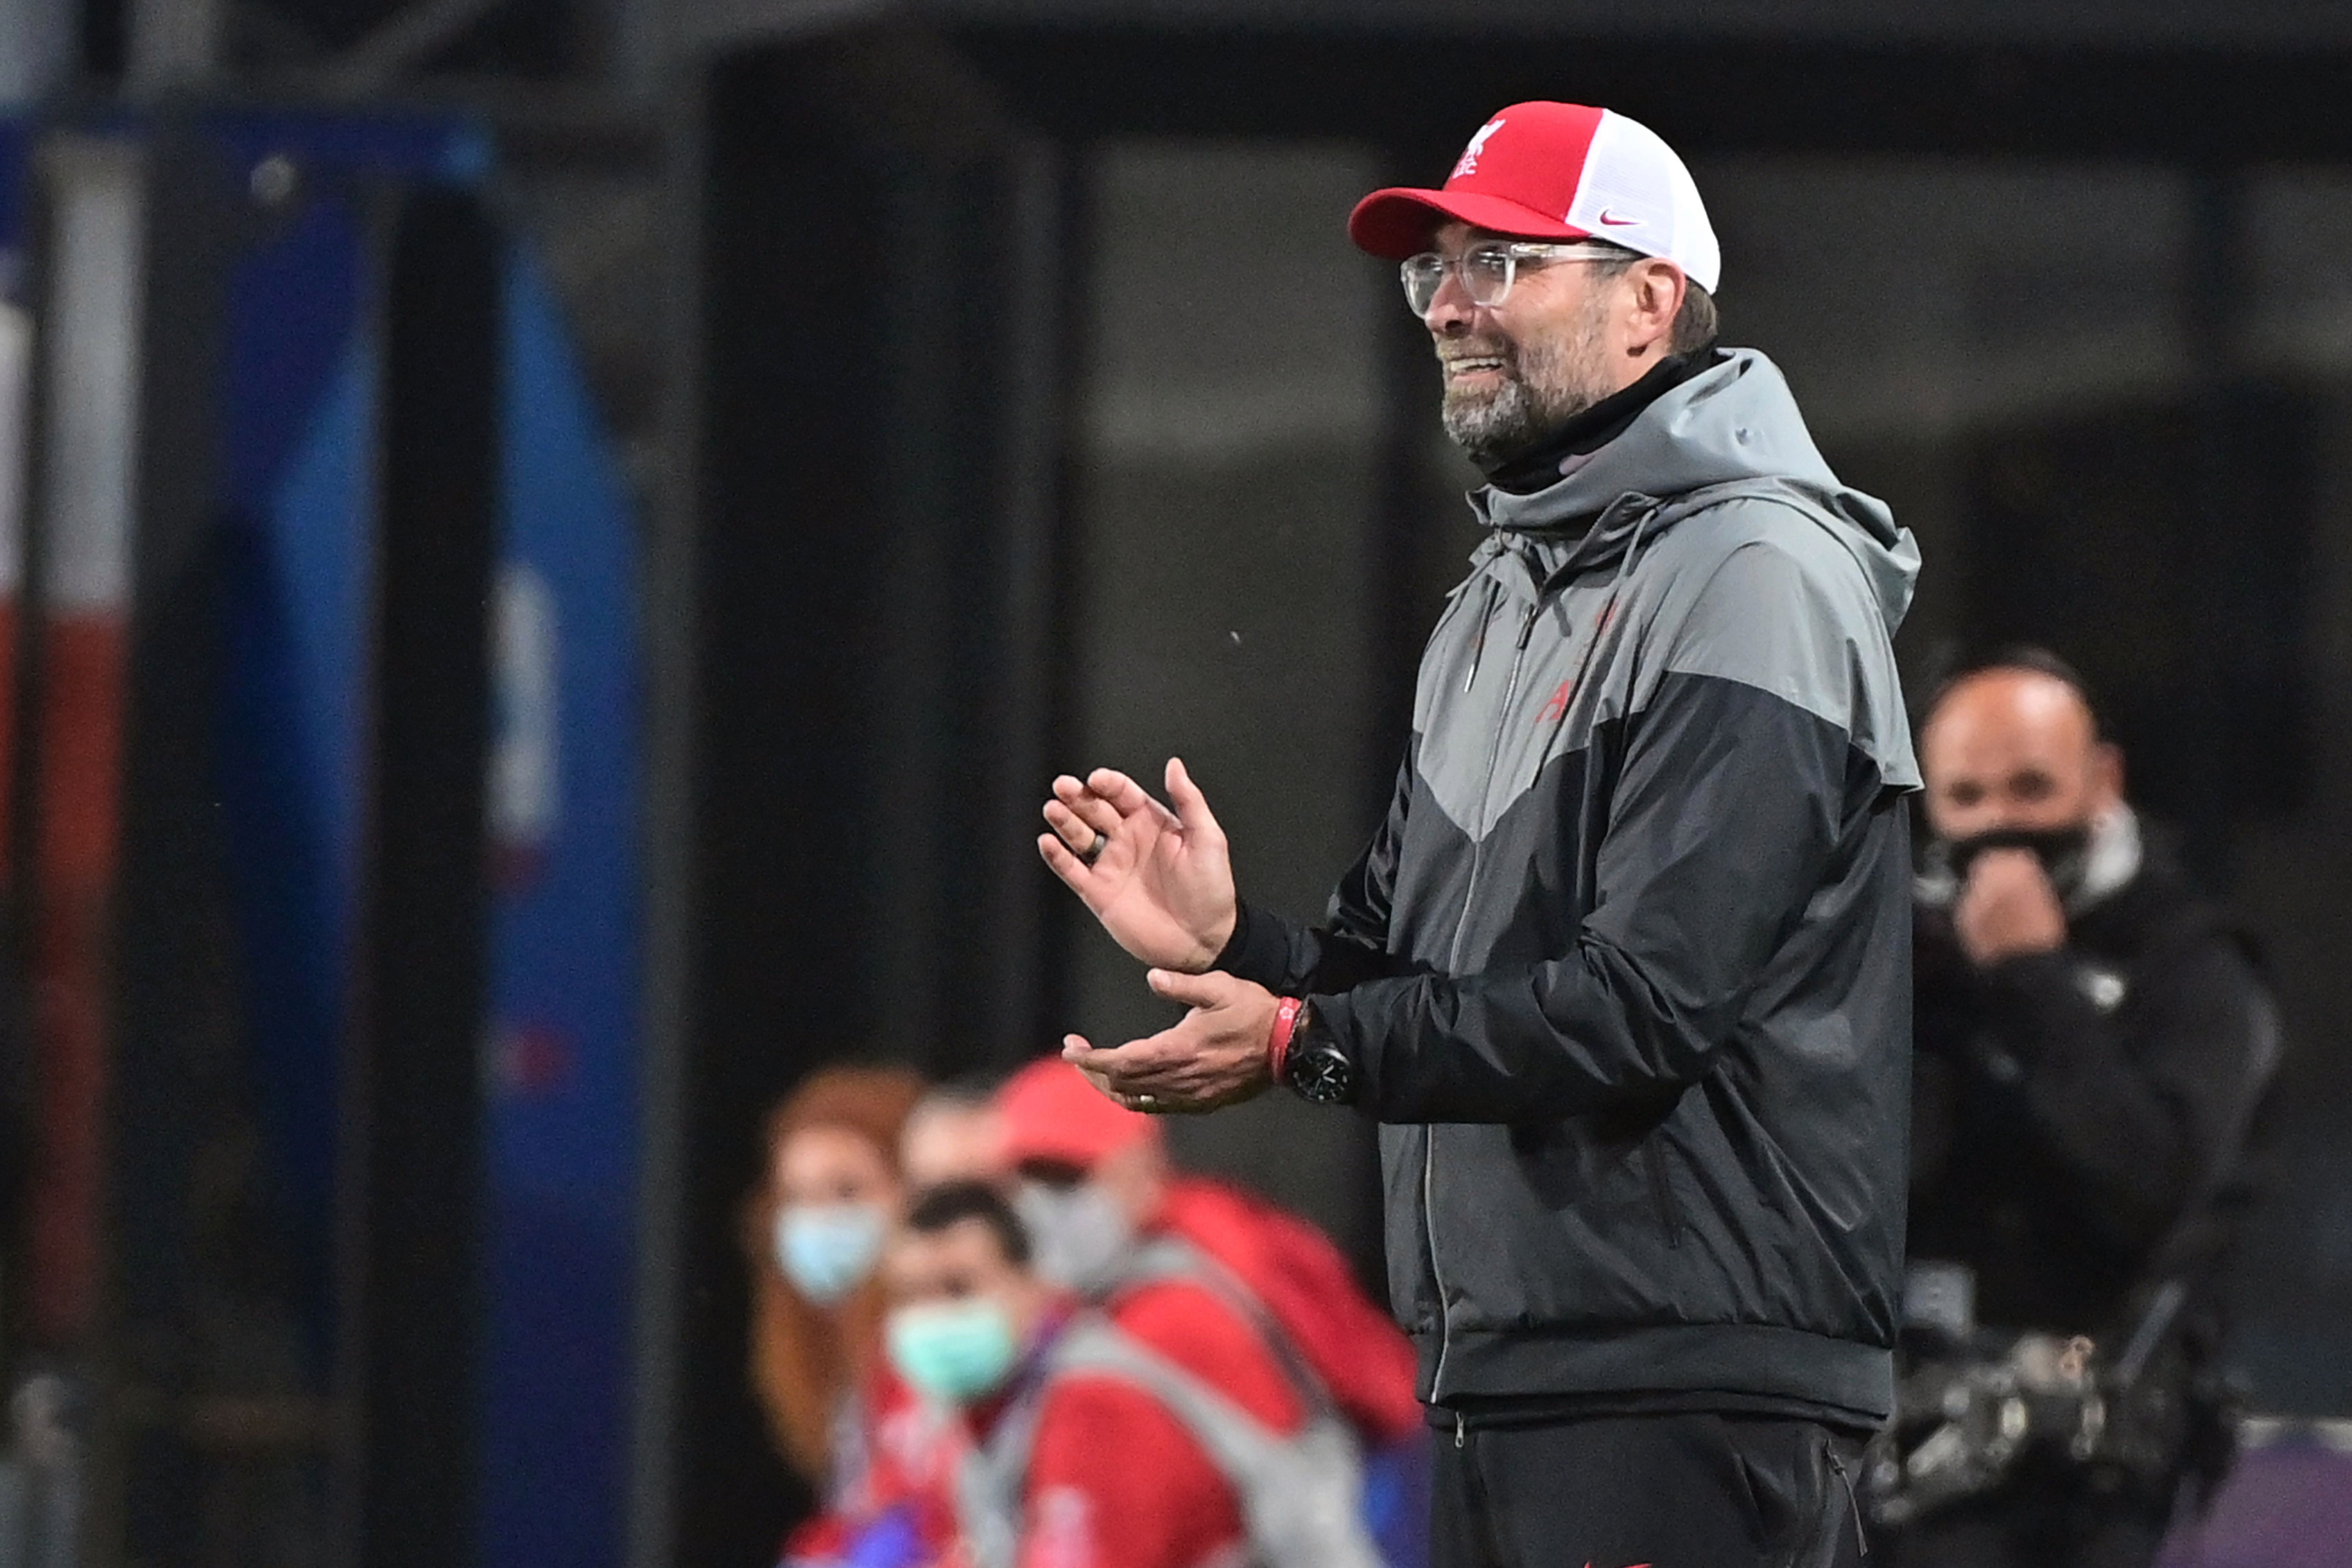 Liverpool could be without NINE players, Leicester missing ENTIRE back five – the makeshift XIs we could see at Anfield due to injury crisis